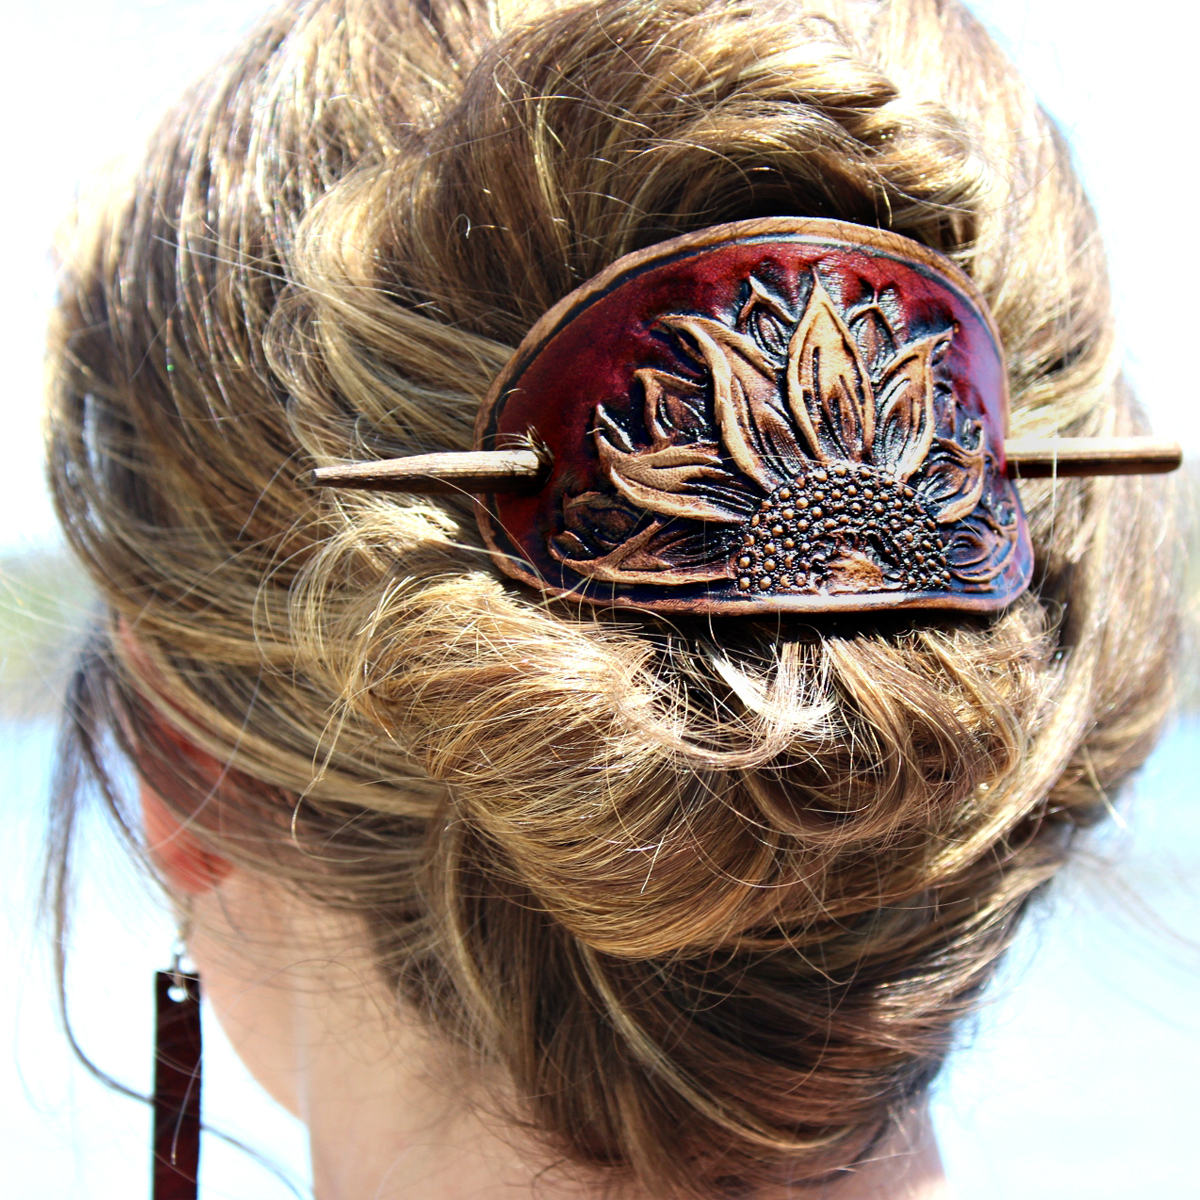 sunflower-hair-slide-the-leather-smithy_WEB2